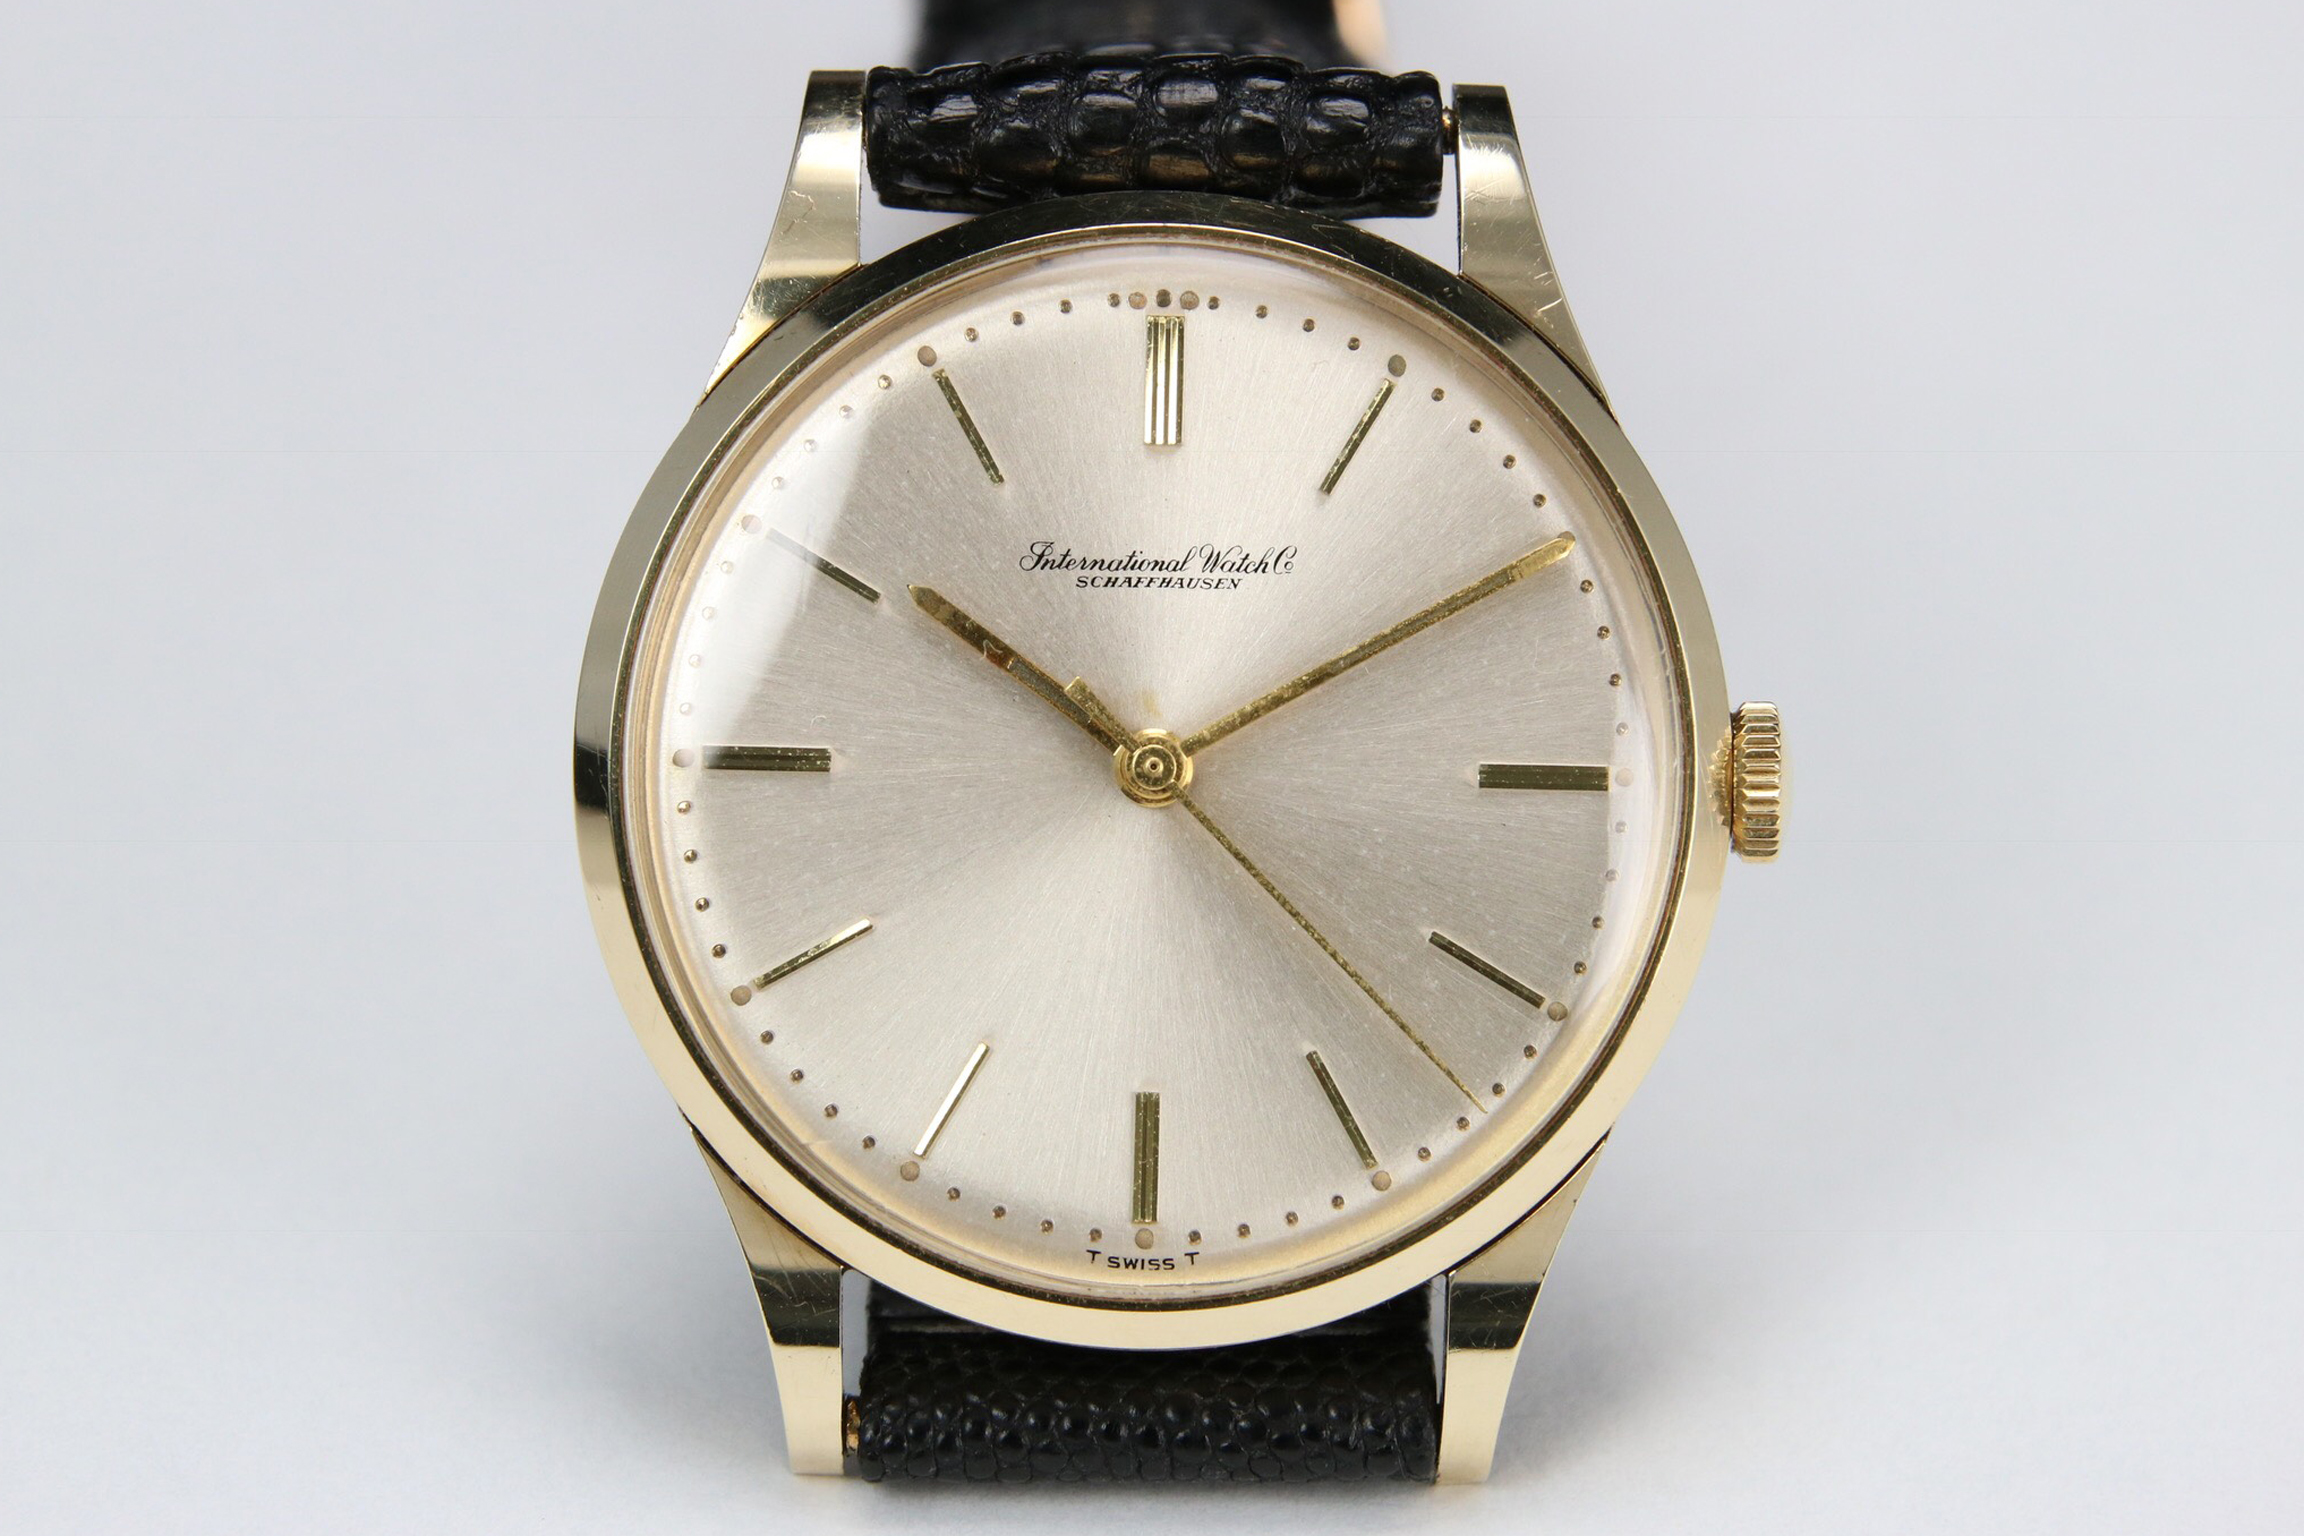 1963 Iwc Ref 347 Cal 89 Yg Vintage Watches For Sale Certified